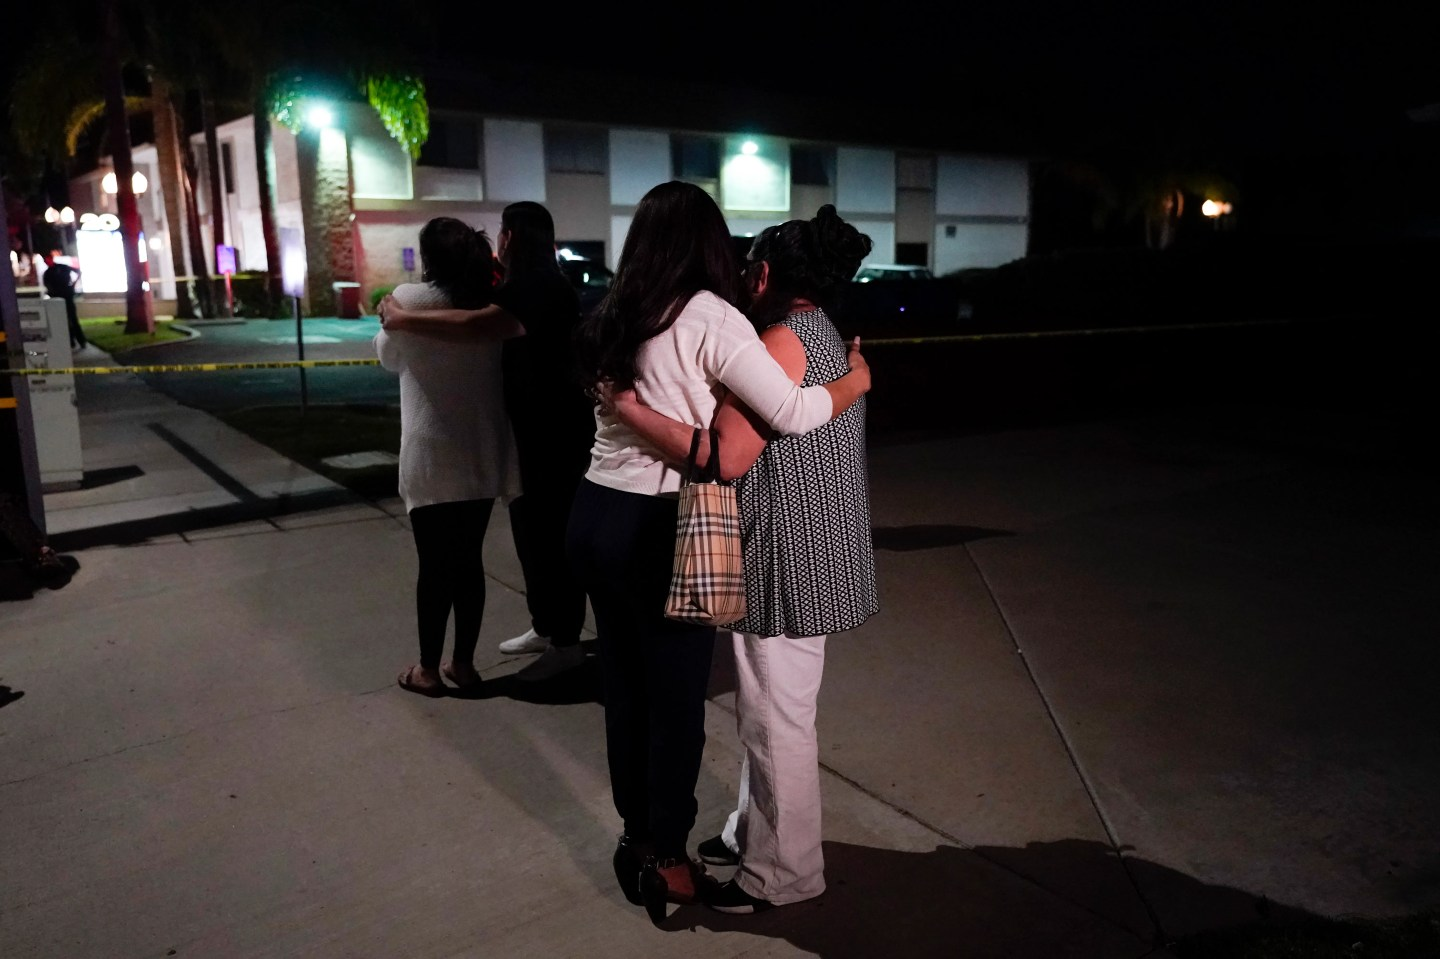 People are pictured comforting each other as they stand near a business building where a shooting occurred in Orange, California. Authorities say 4 people, including a child, died during the shooting late Wednesday.